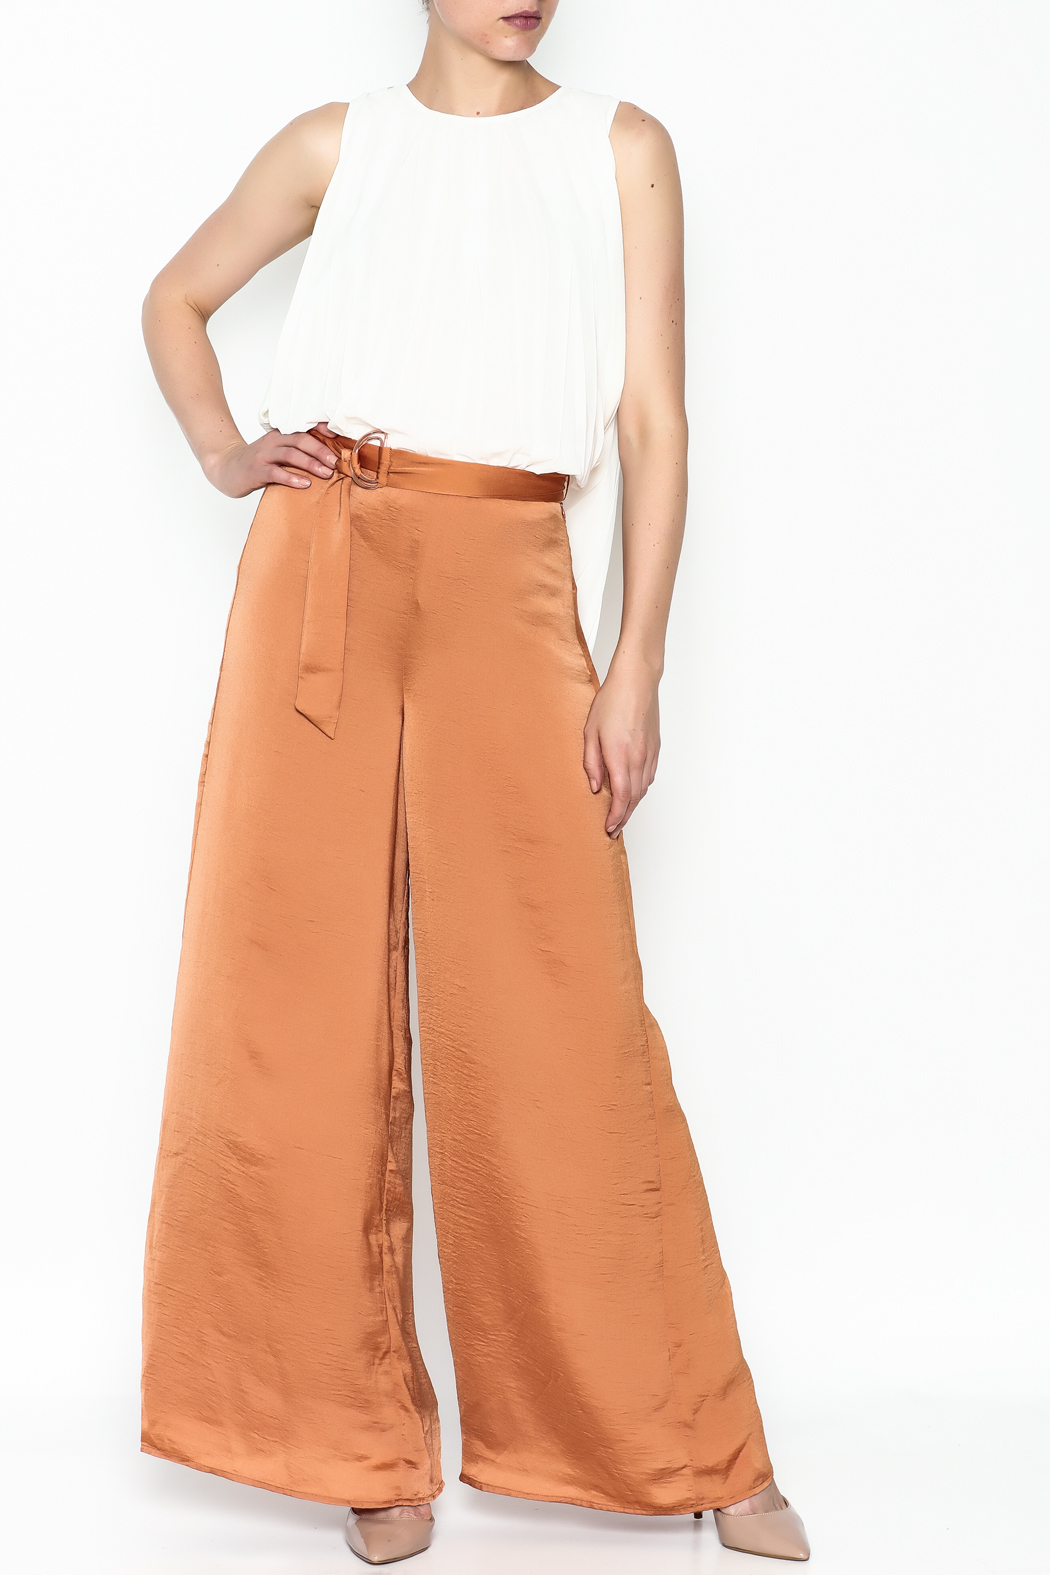 Lucy Paris Terra Cotta Pants - Side Cropped Image